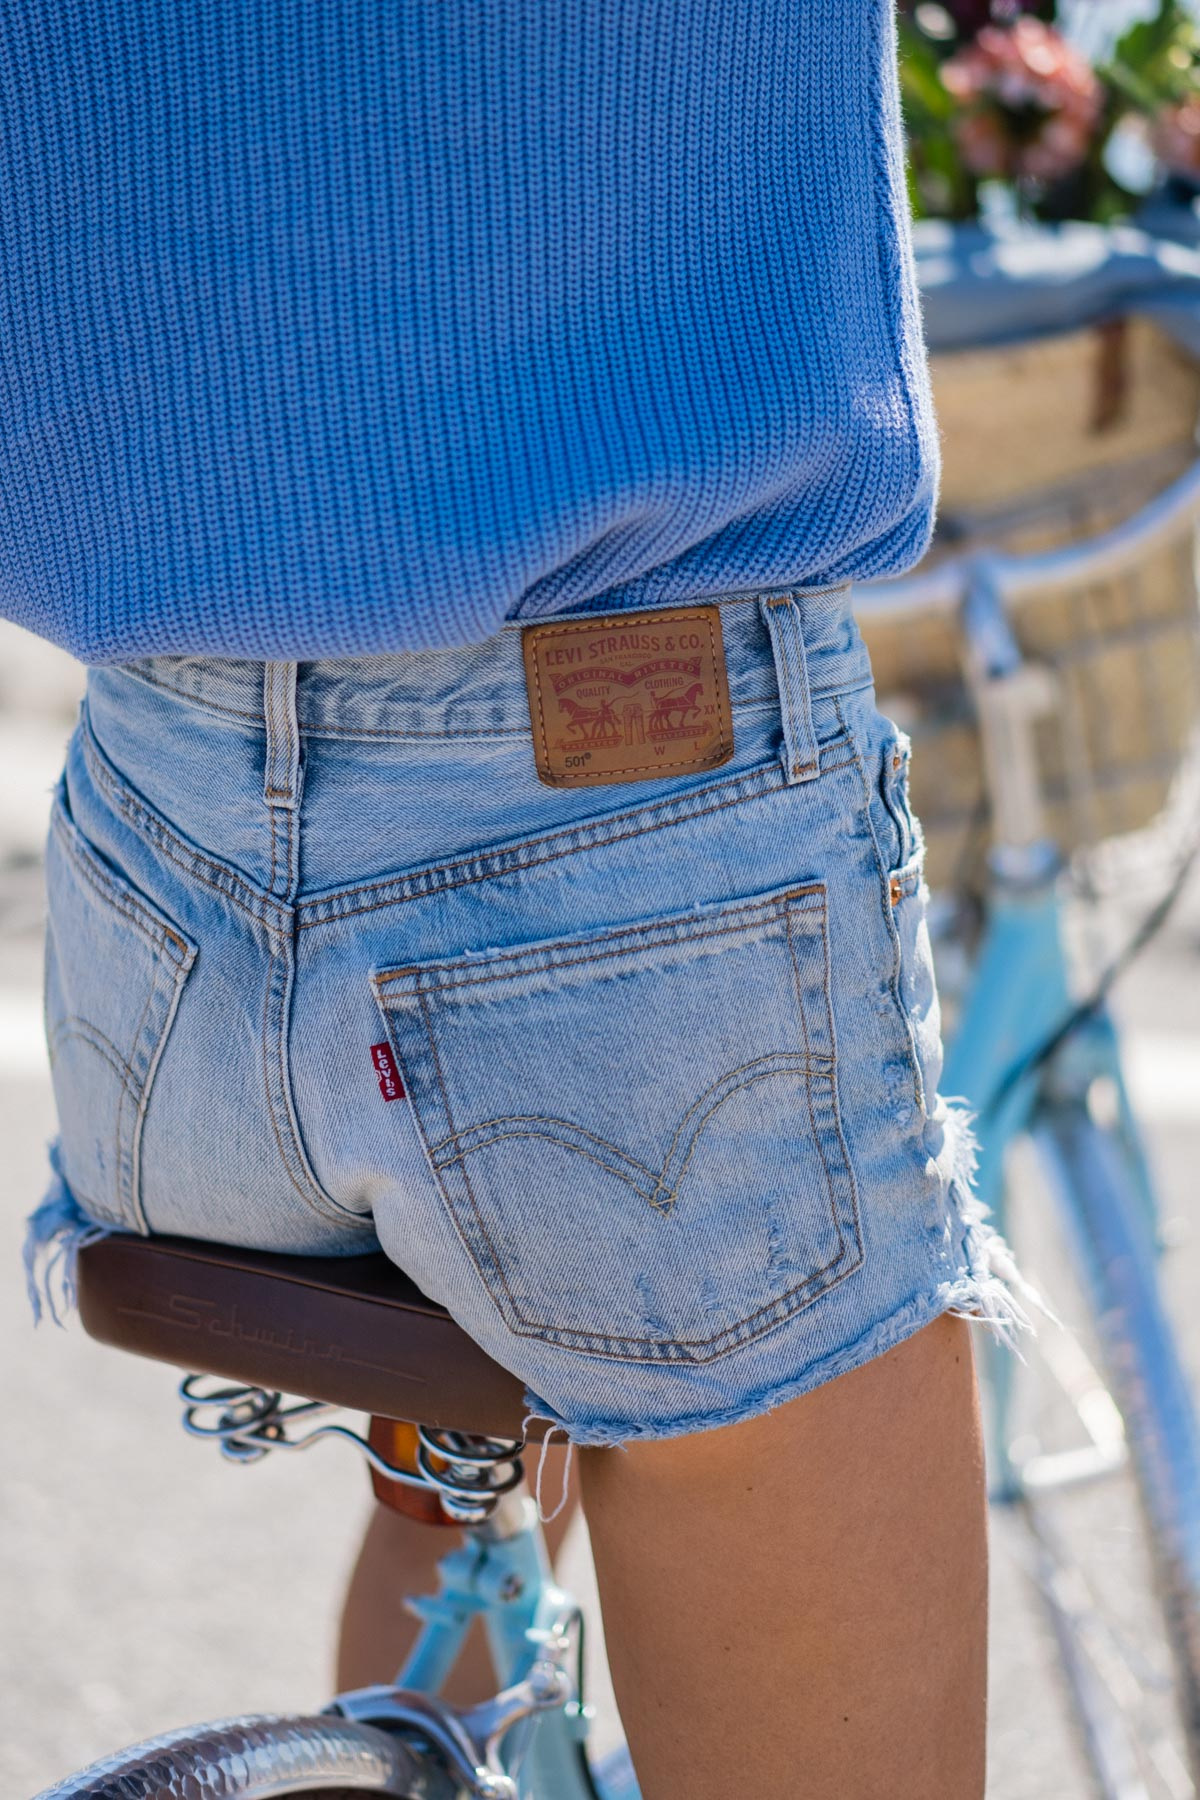 Jess Ann Kirby's favorite denim shorts include Levis 501's for a timeless look